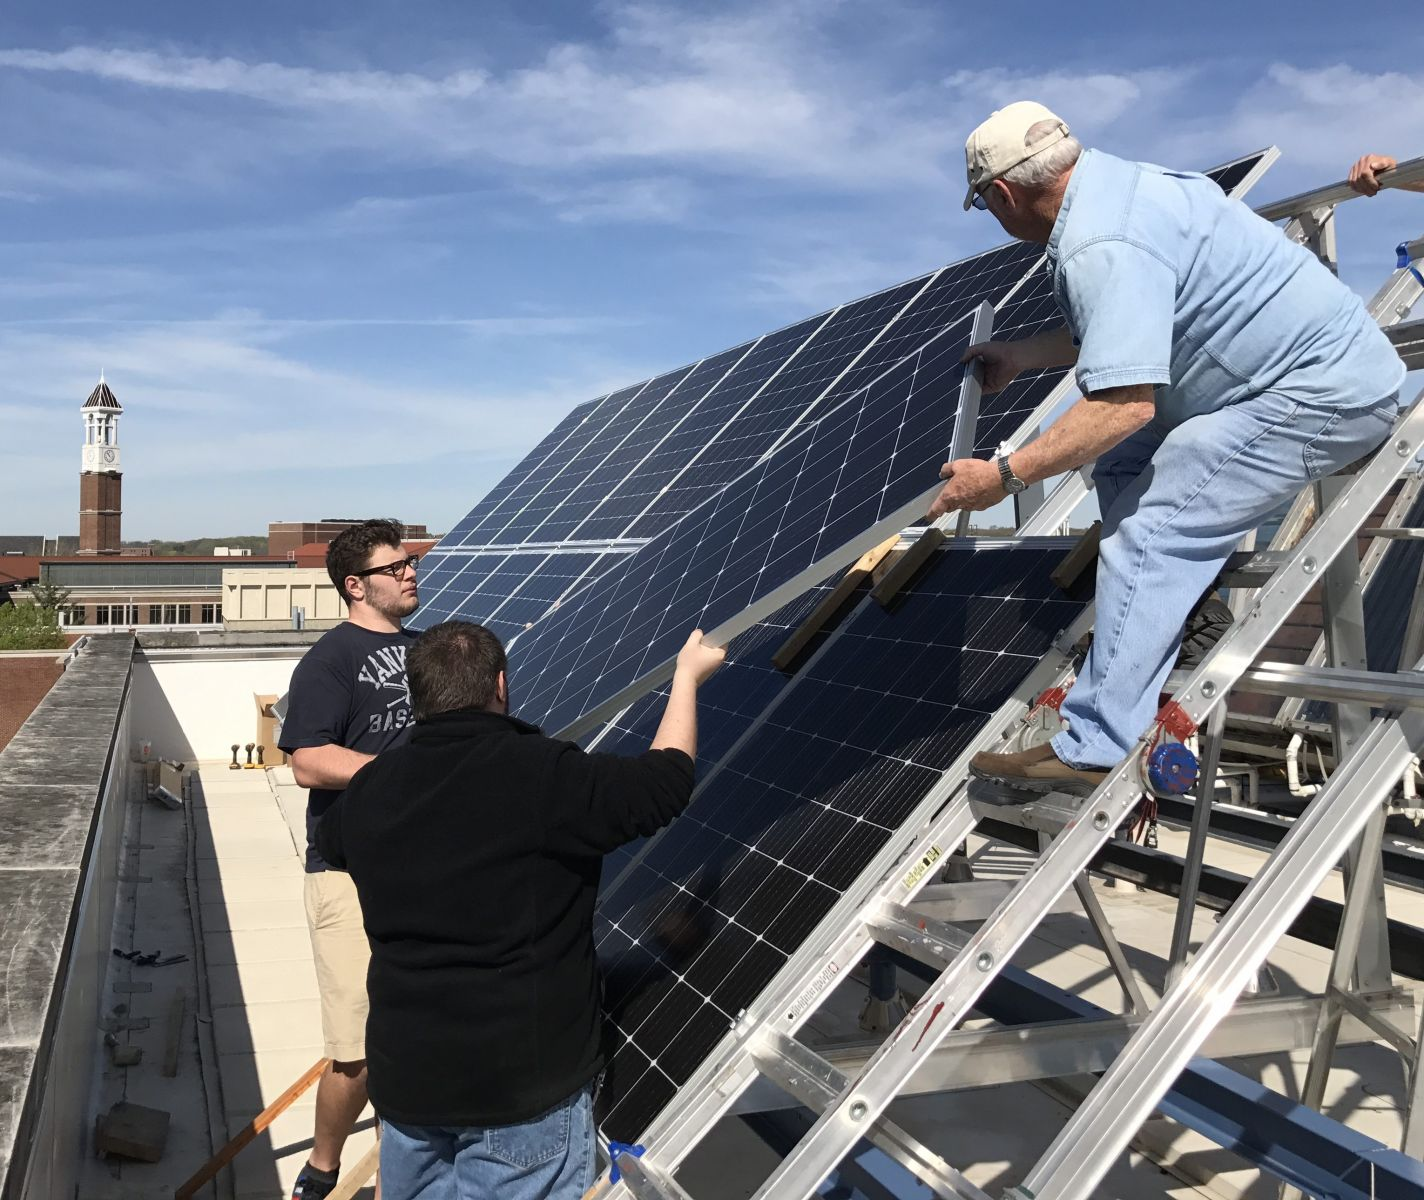 Students hand off a new solar panel on Knoy's rooftop